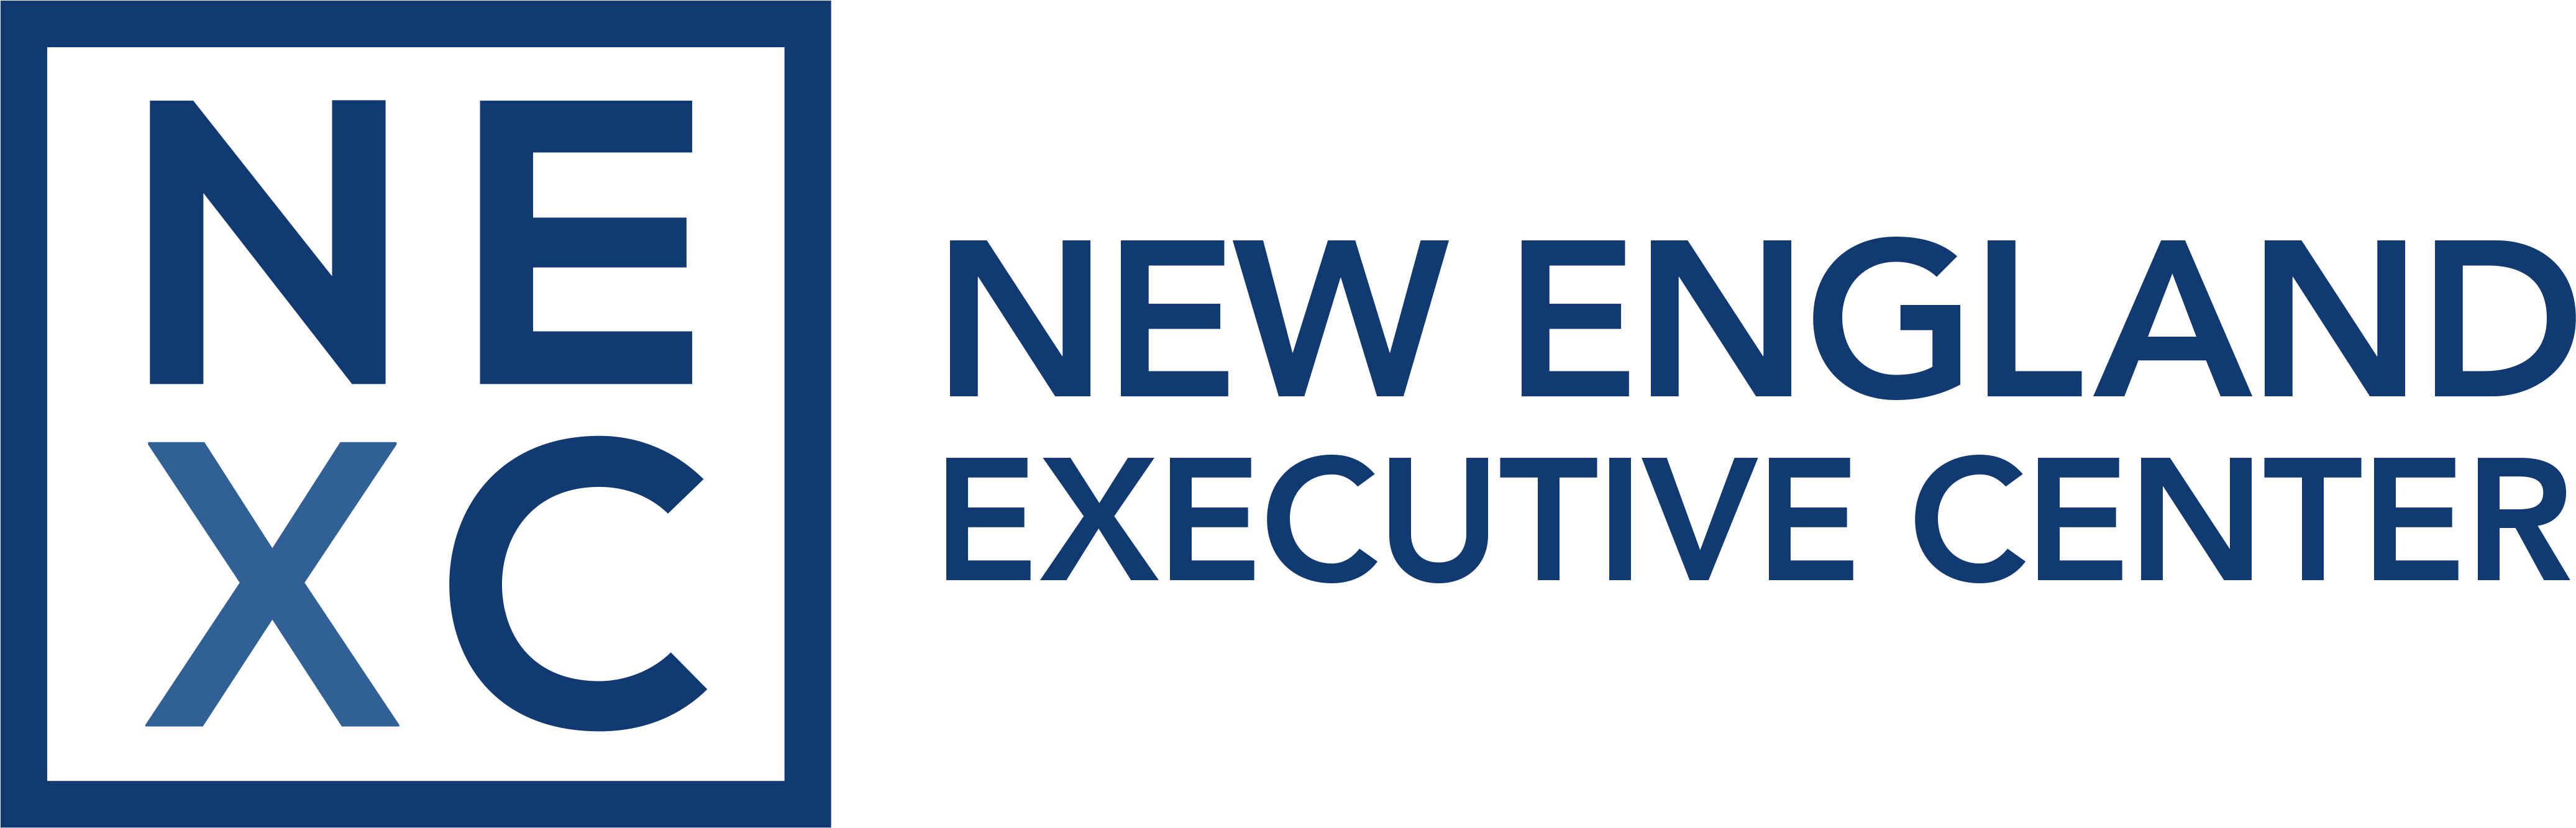 New England Executive Center